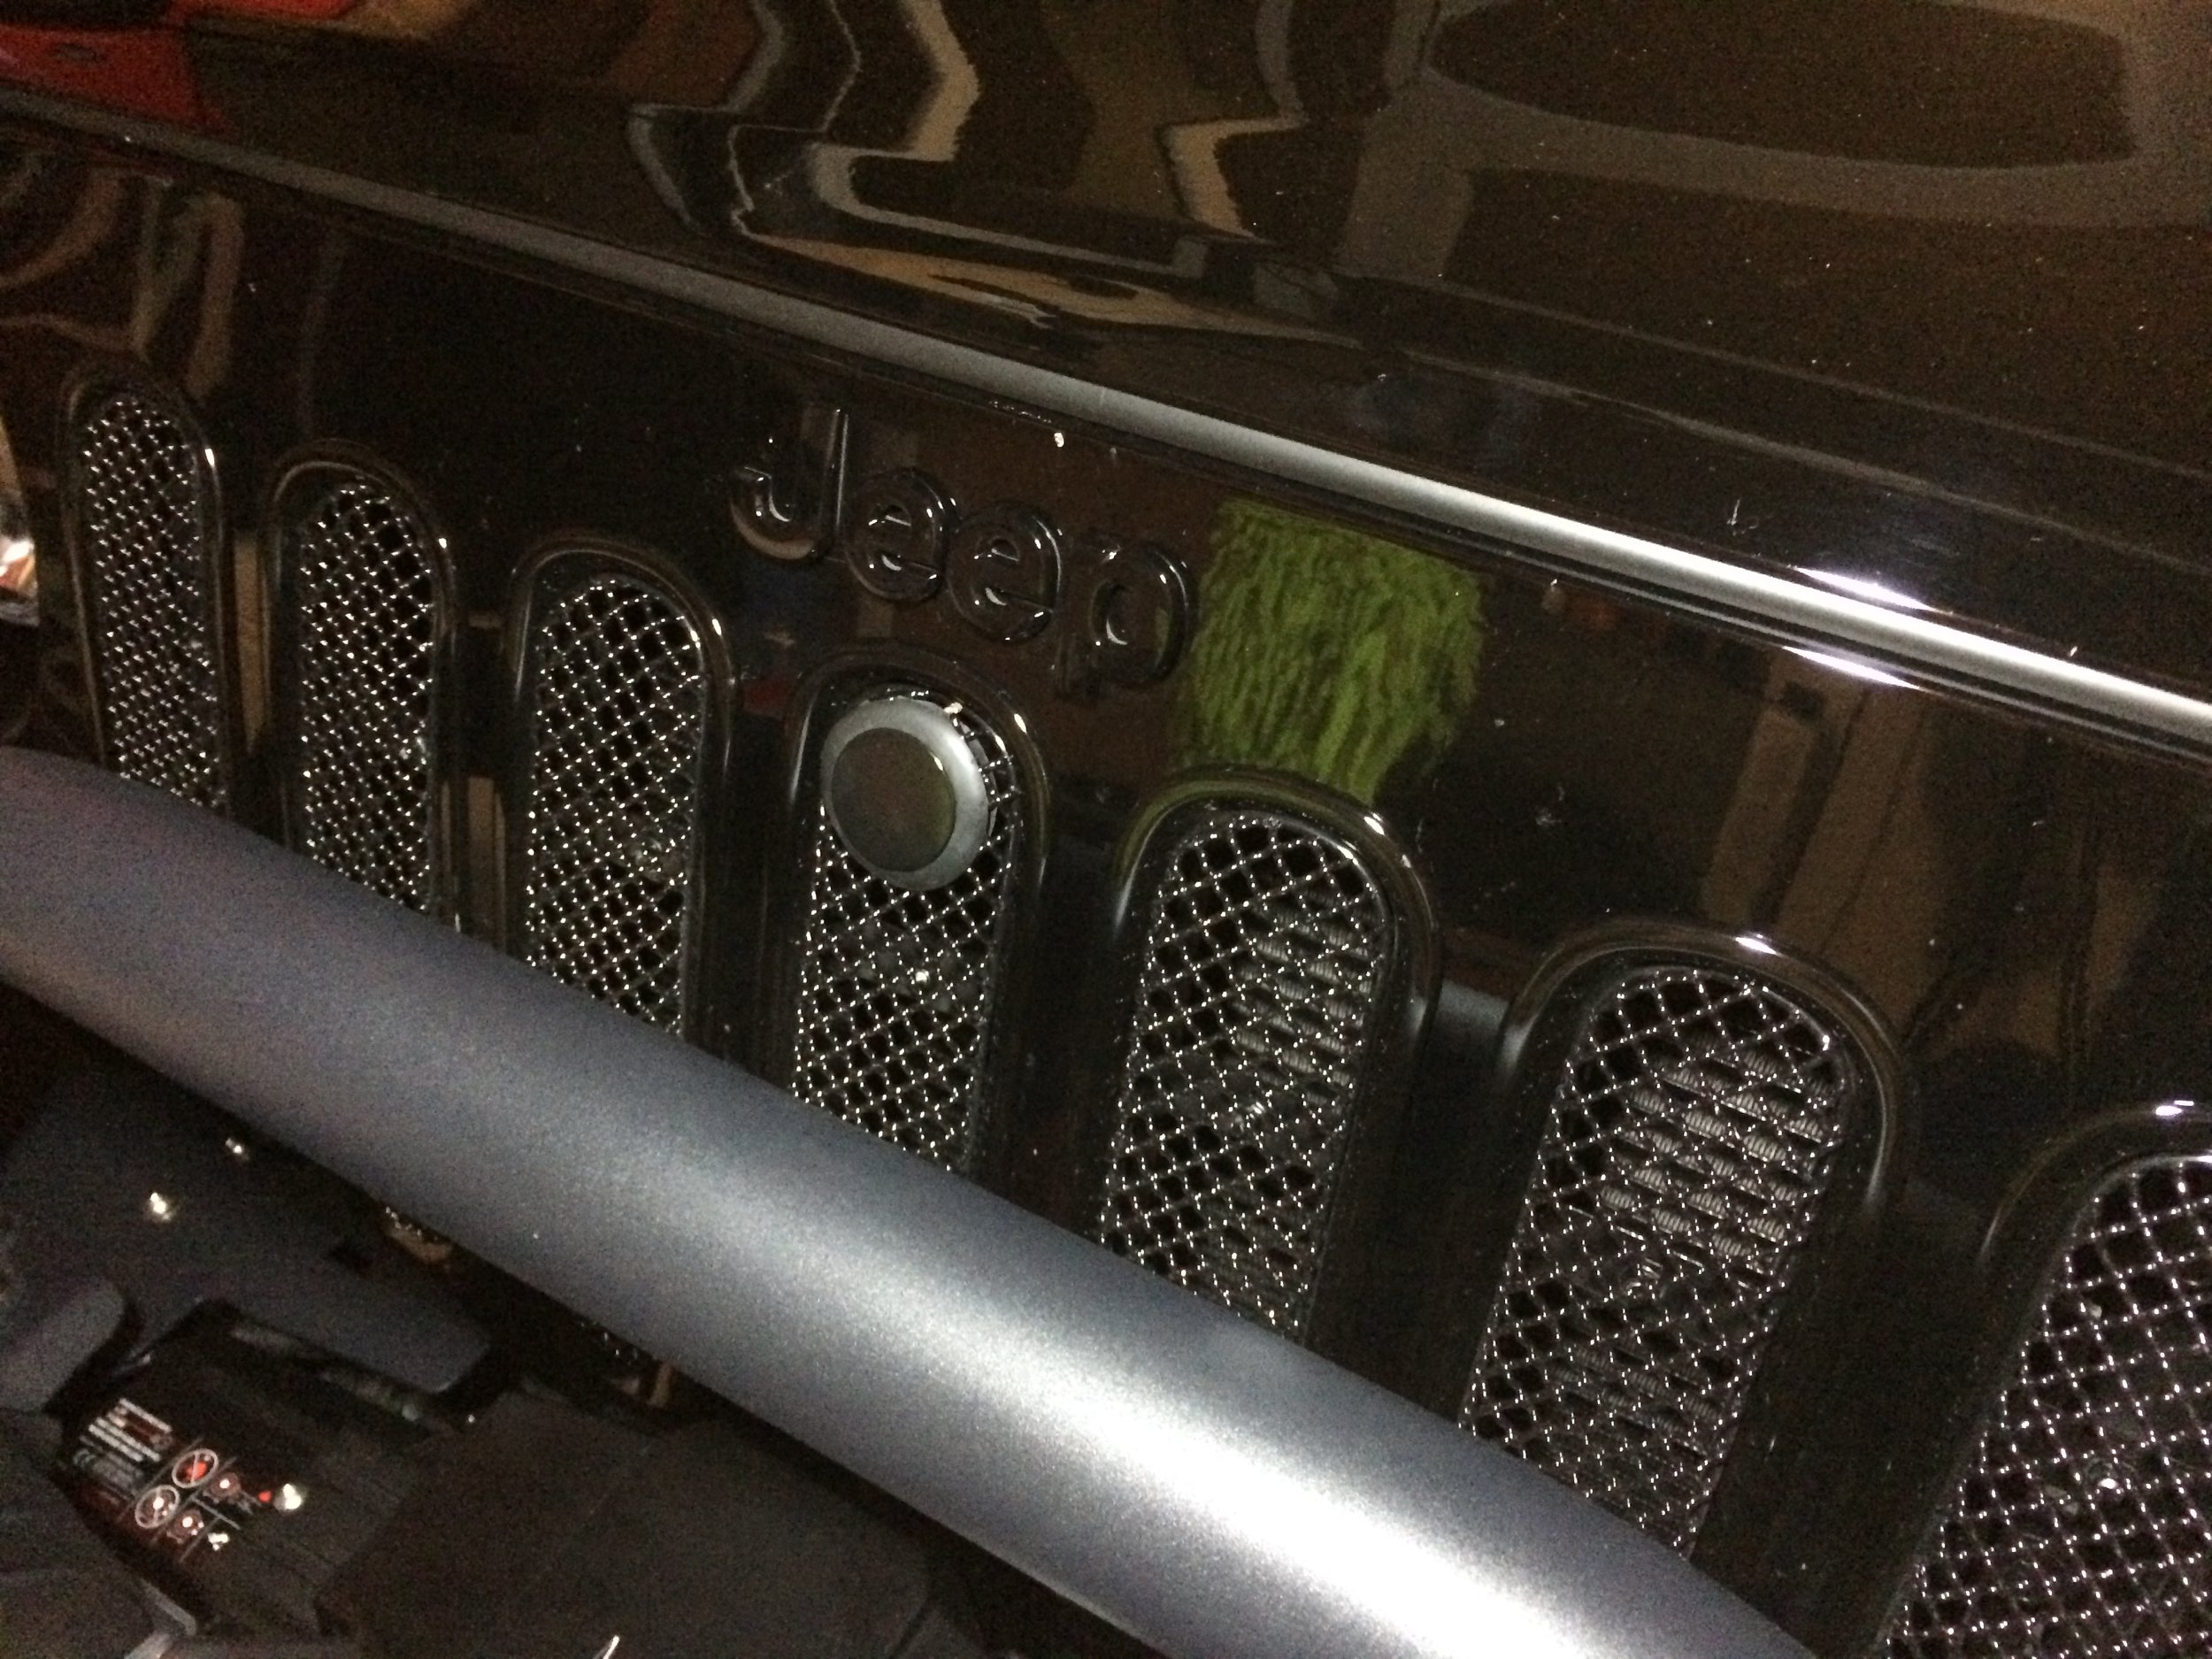 Grill mesh inserts with custom keyhole plug for unlocking the BOLT hood lock.